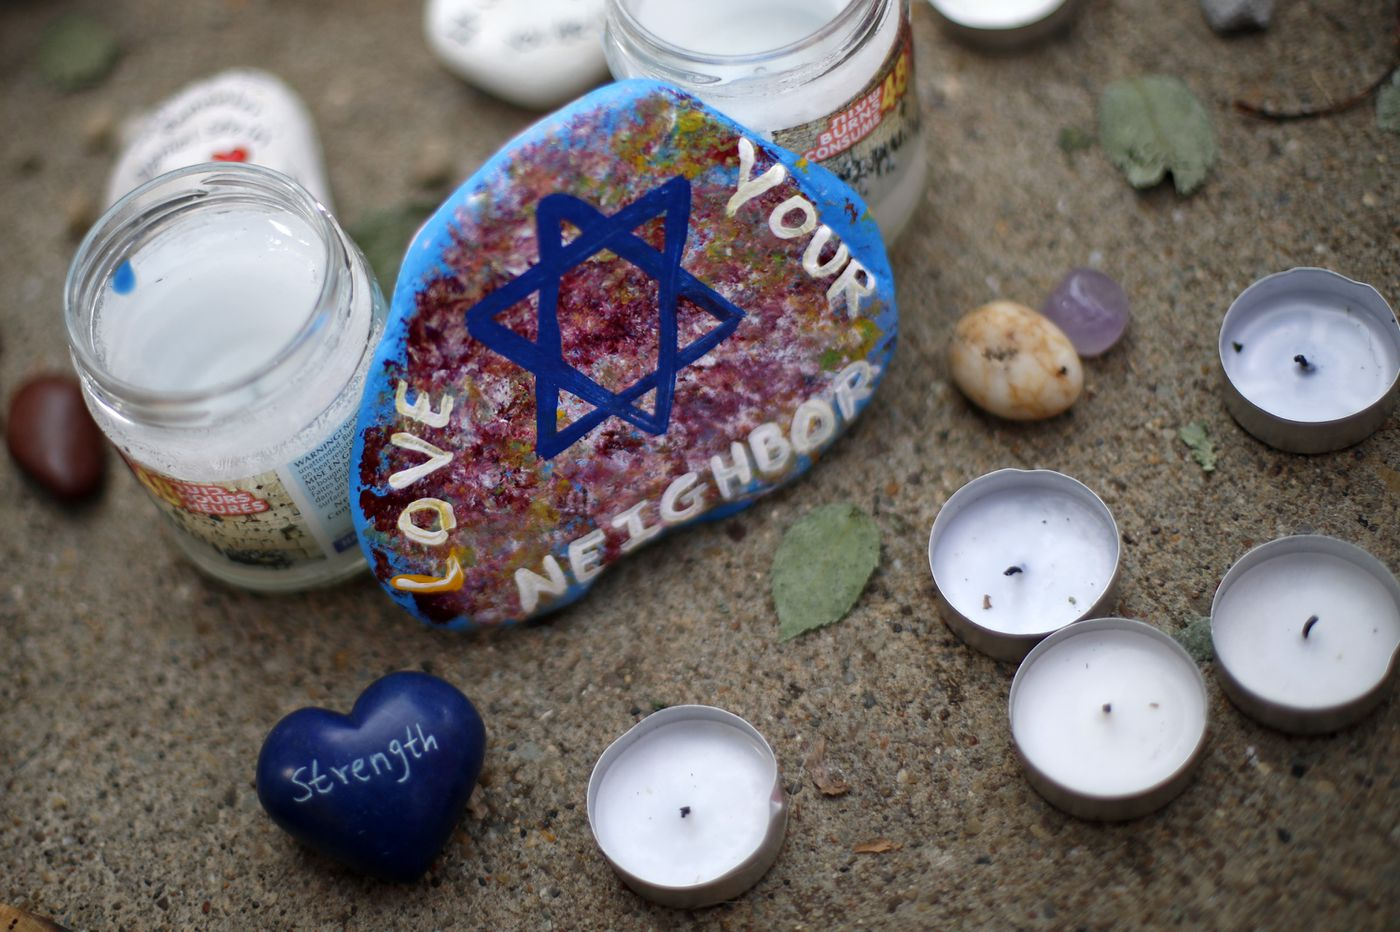 After the Pittsburgh shooting, I feel more Jewish than ever before | Perspective